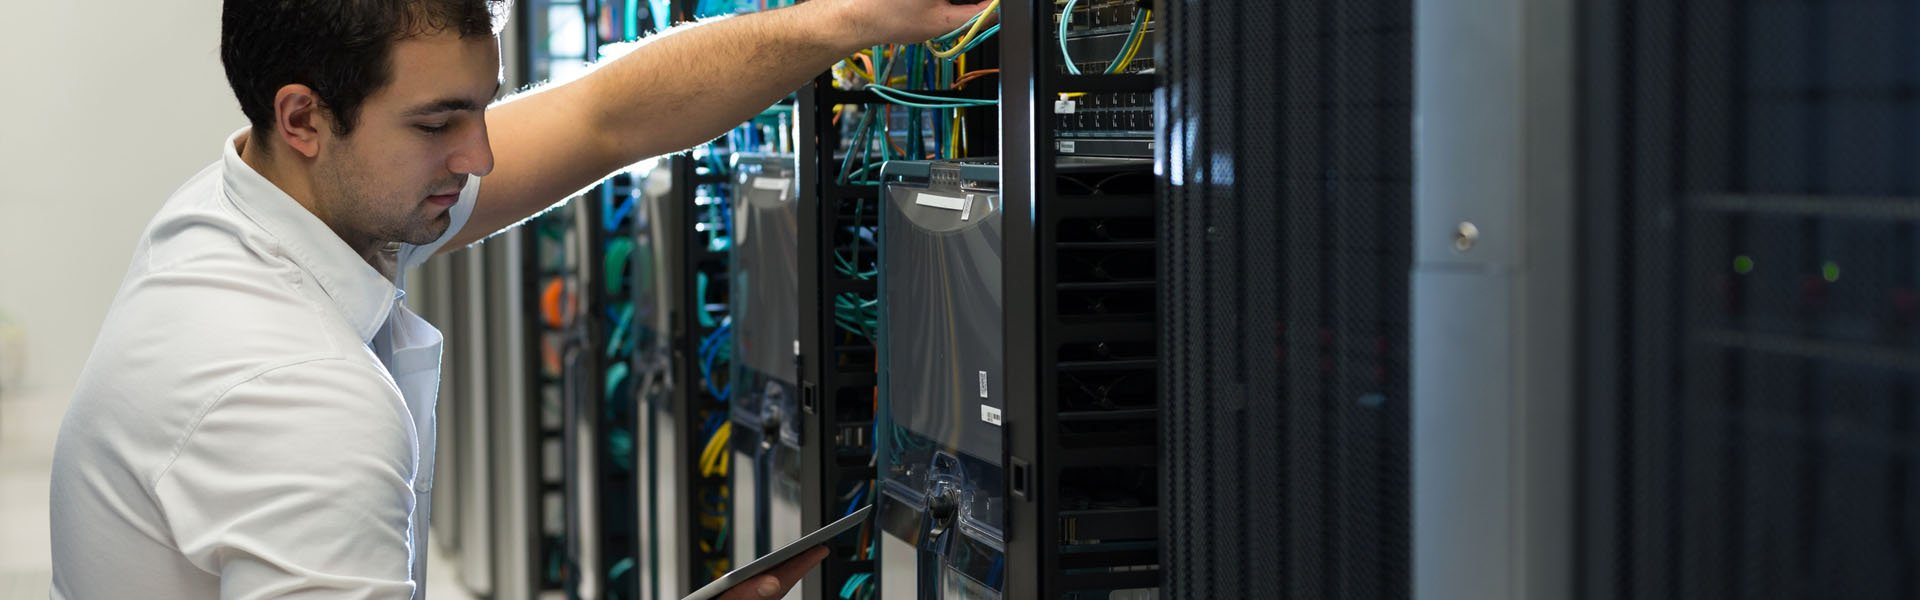 Managed Dedicated Servers - Hotwire Networks